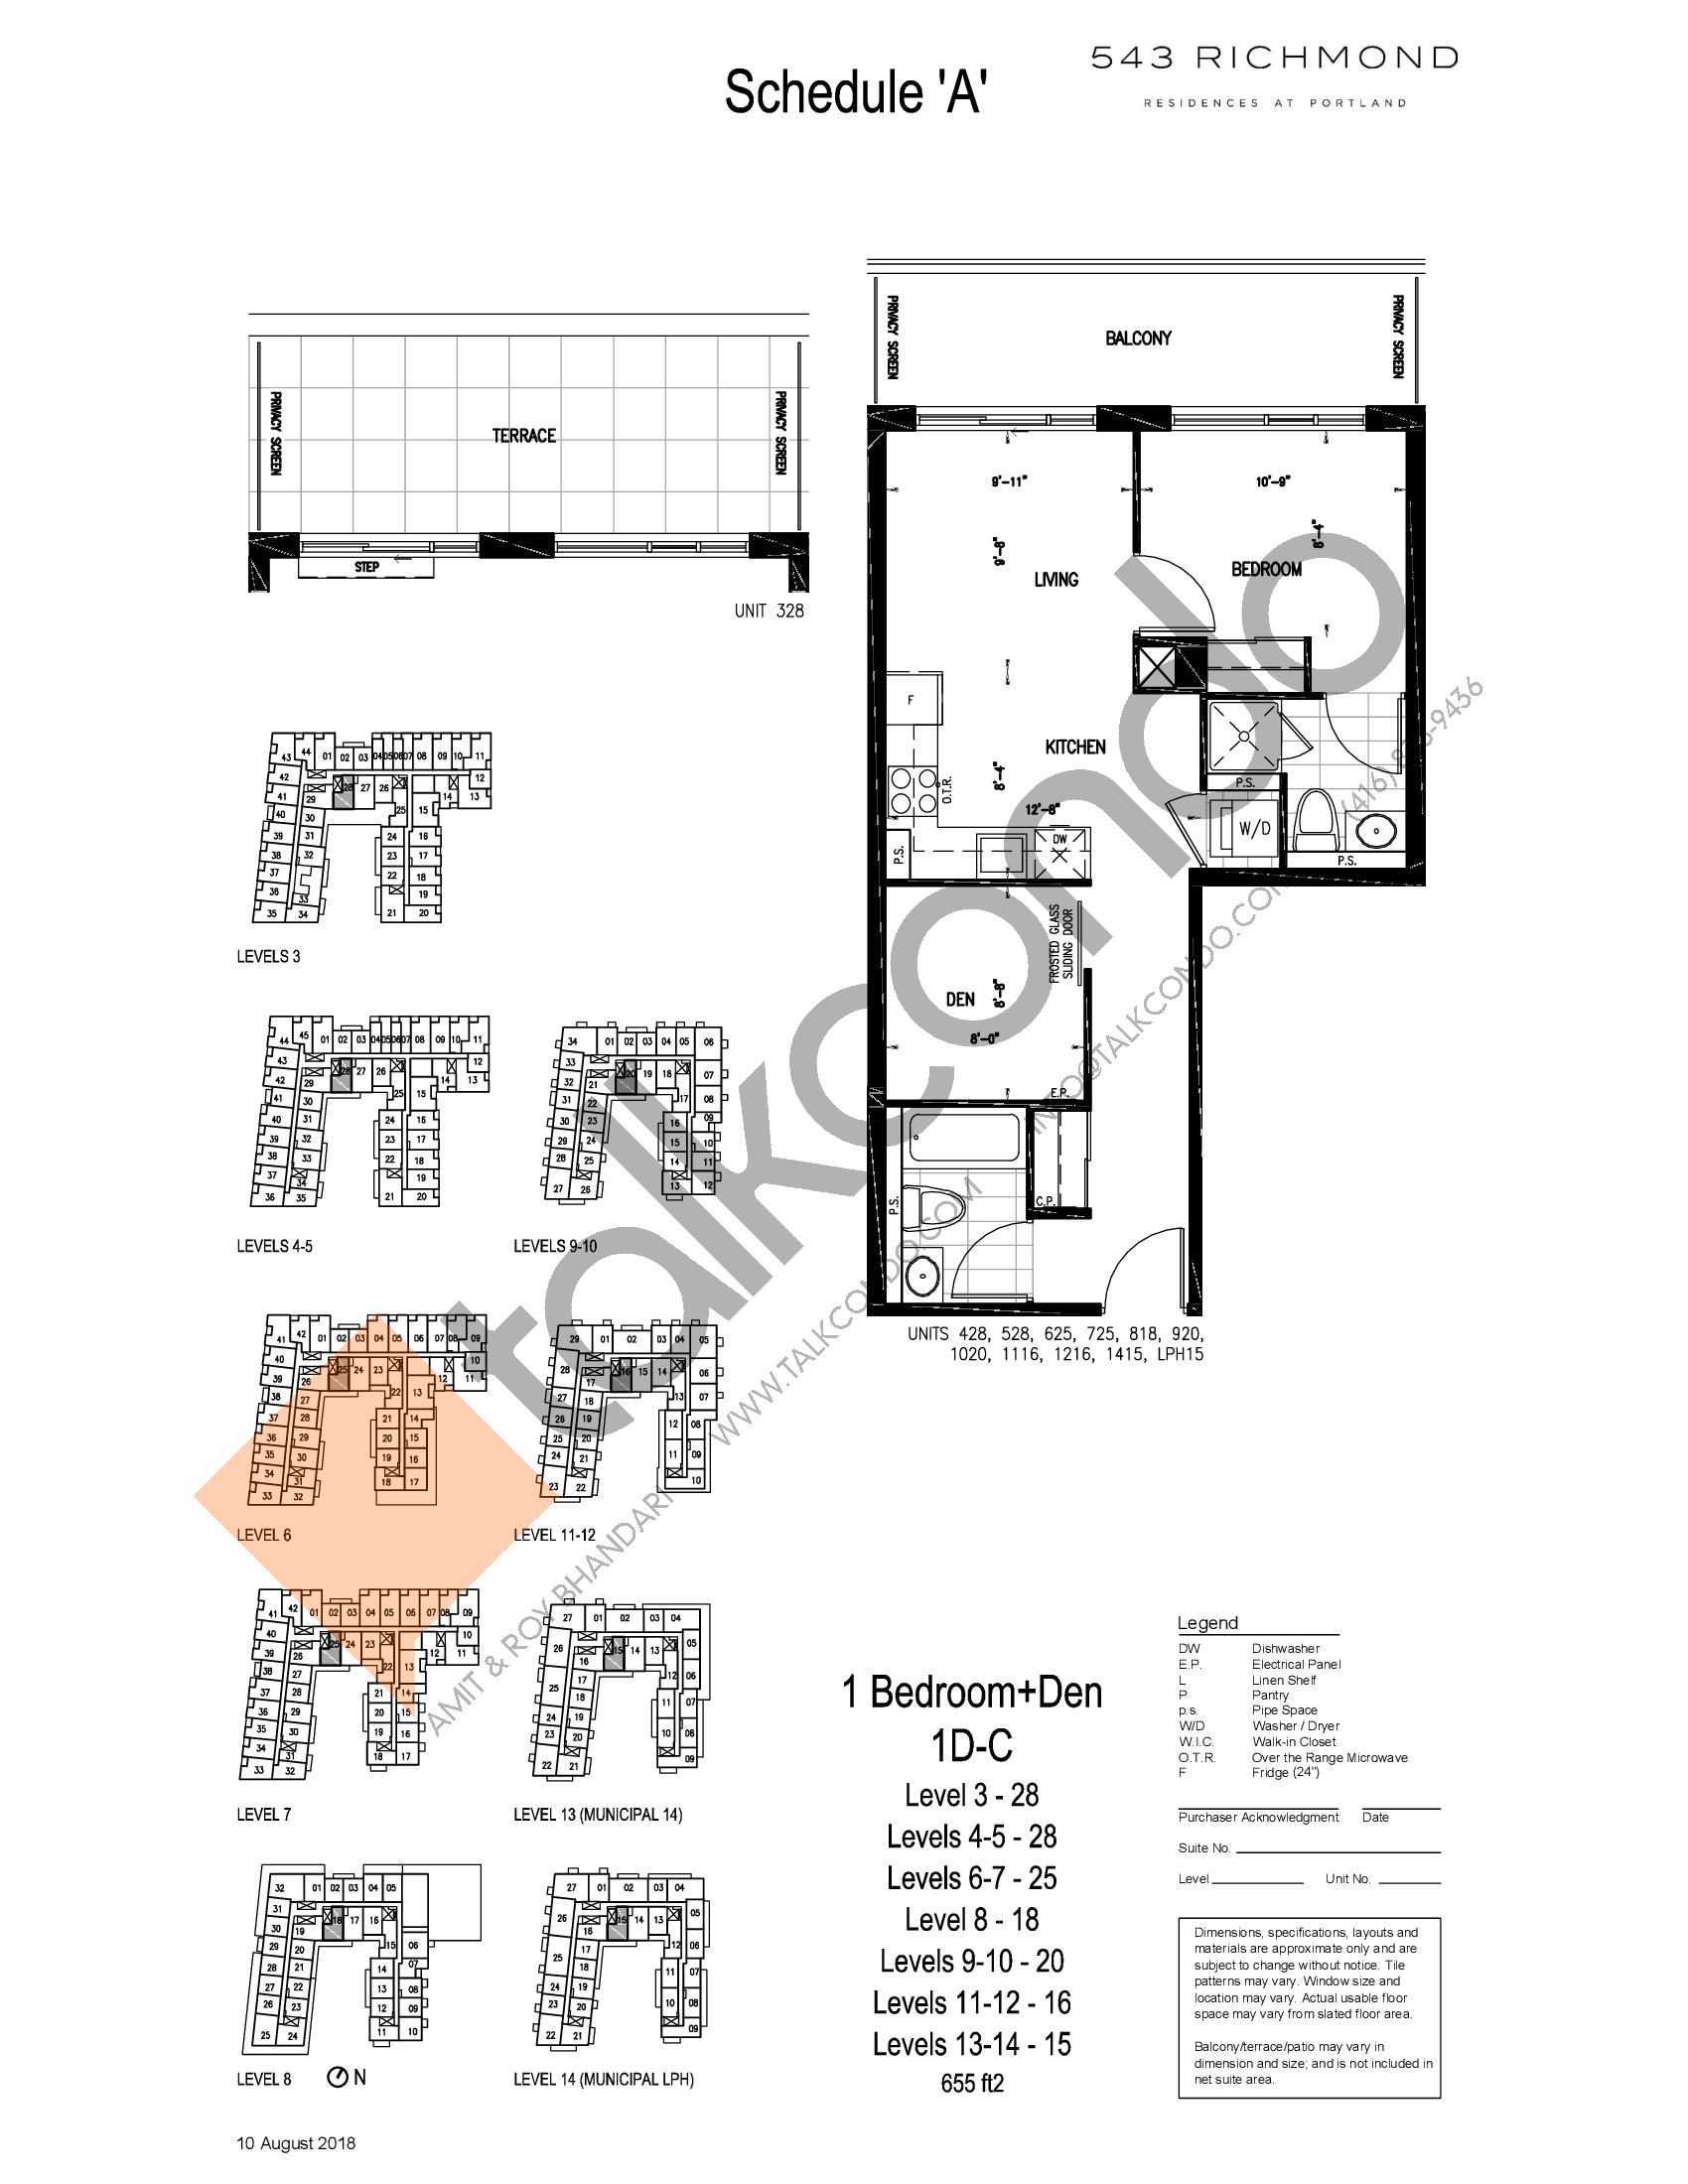 1D-C Floor Plan at 543 Richmond St Condos - 655 sq.ft